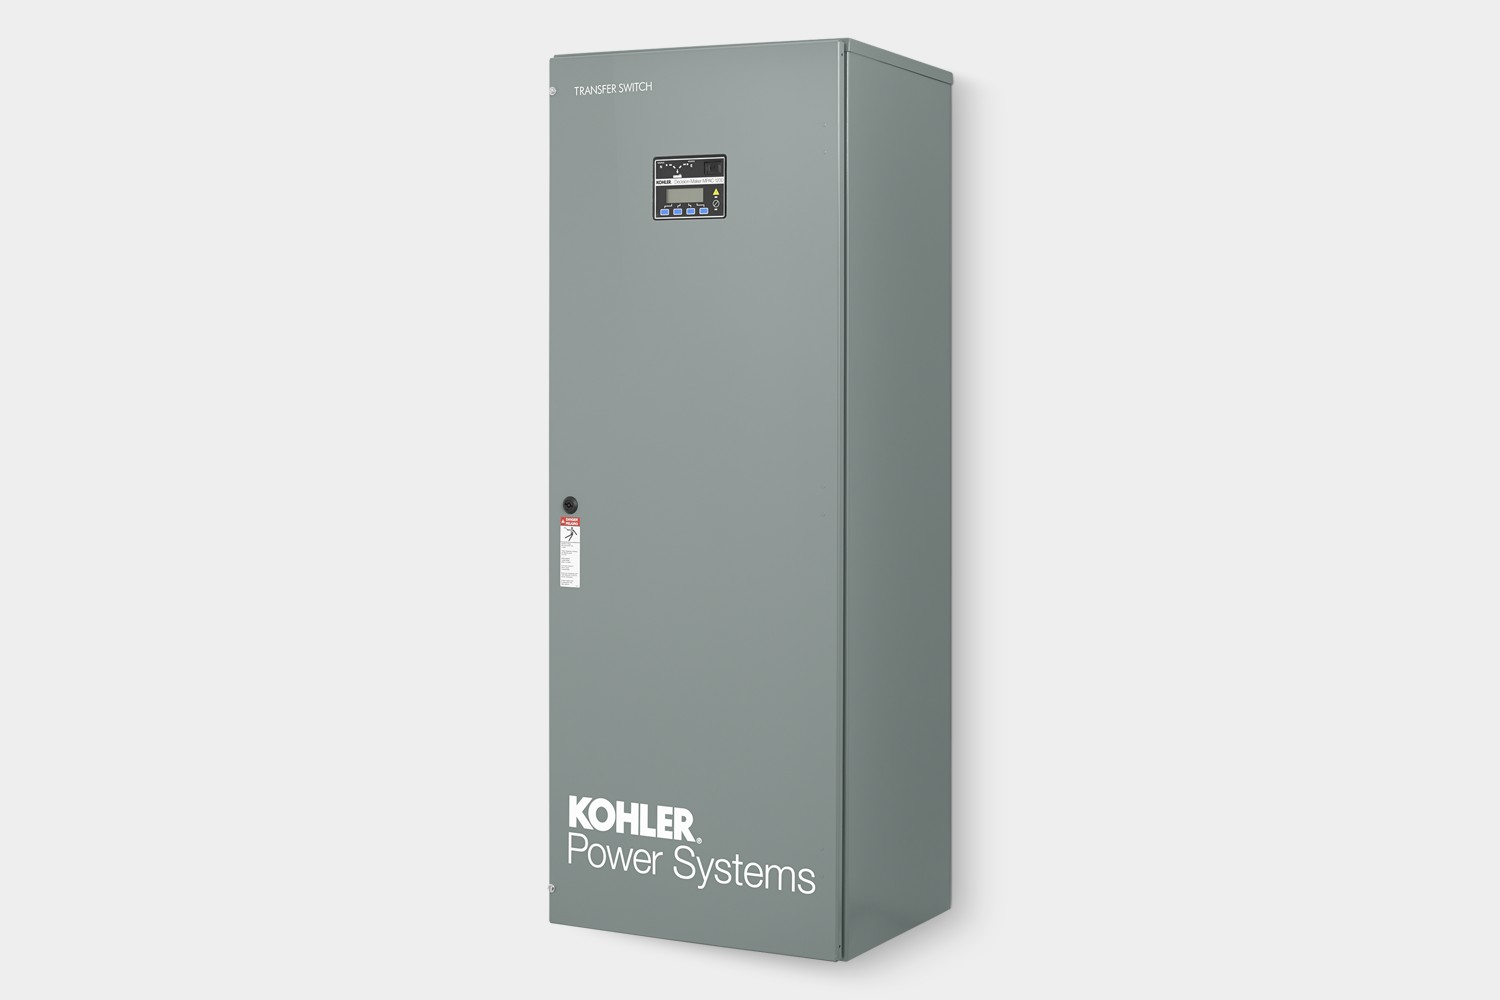 kohler automatic transfer switch wiring diagram wiring diagram generac guardian 5887 20kw aluminum home standby generator s transfer switches wiring diagram manuals source installation of two automatic